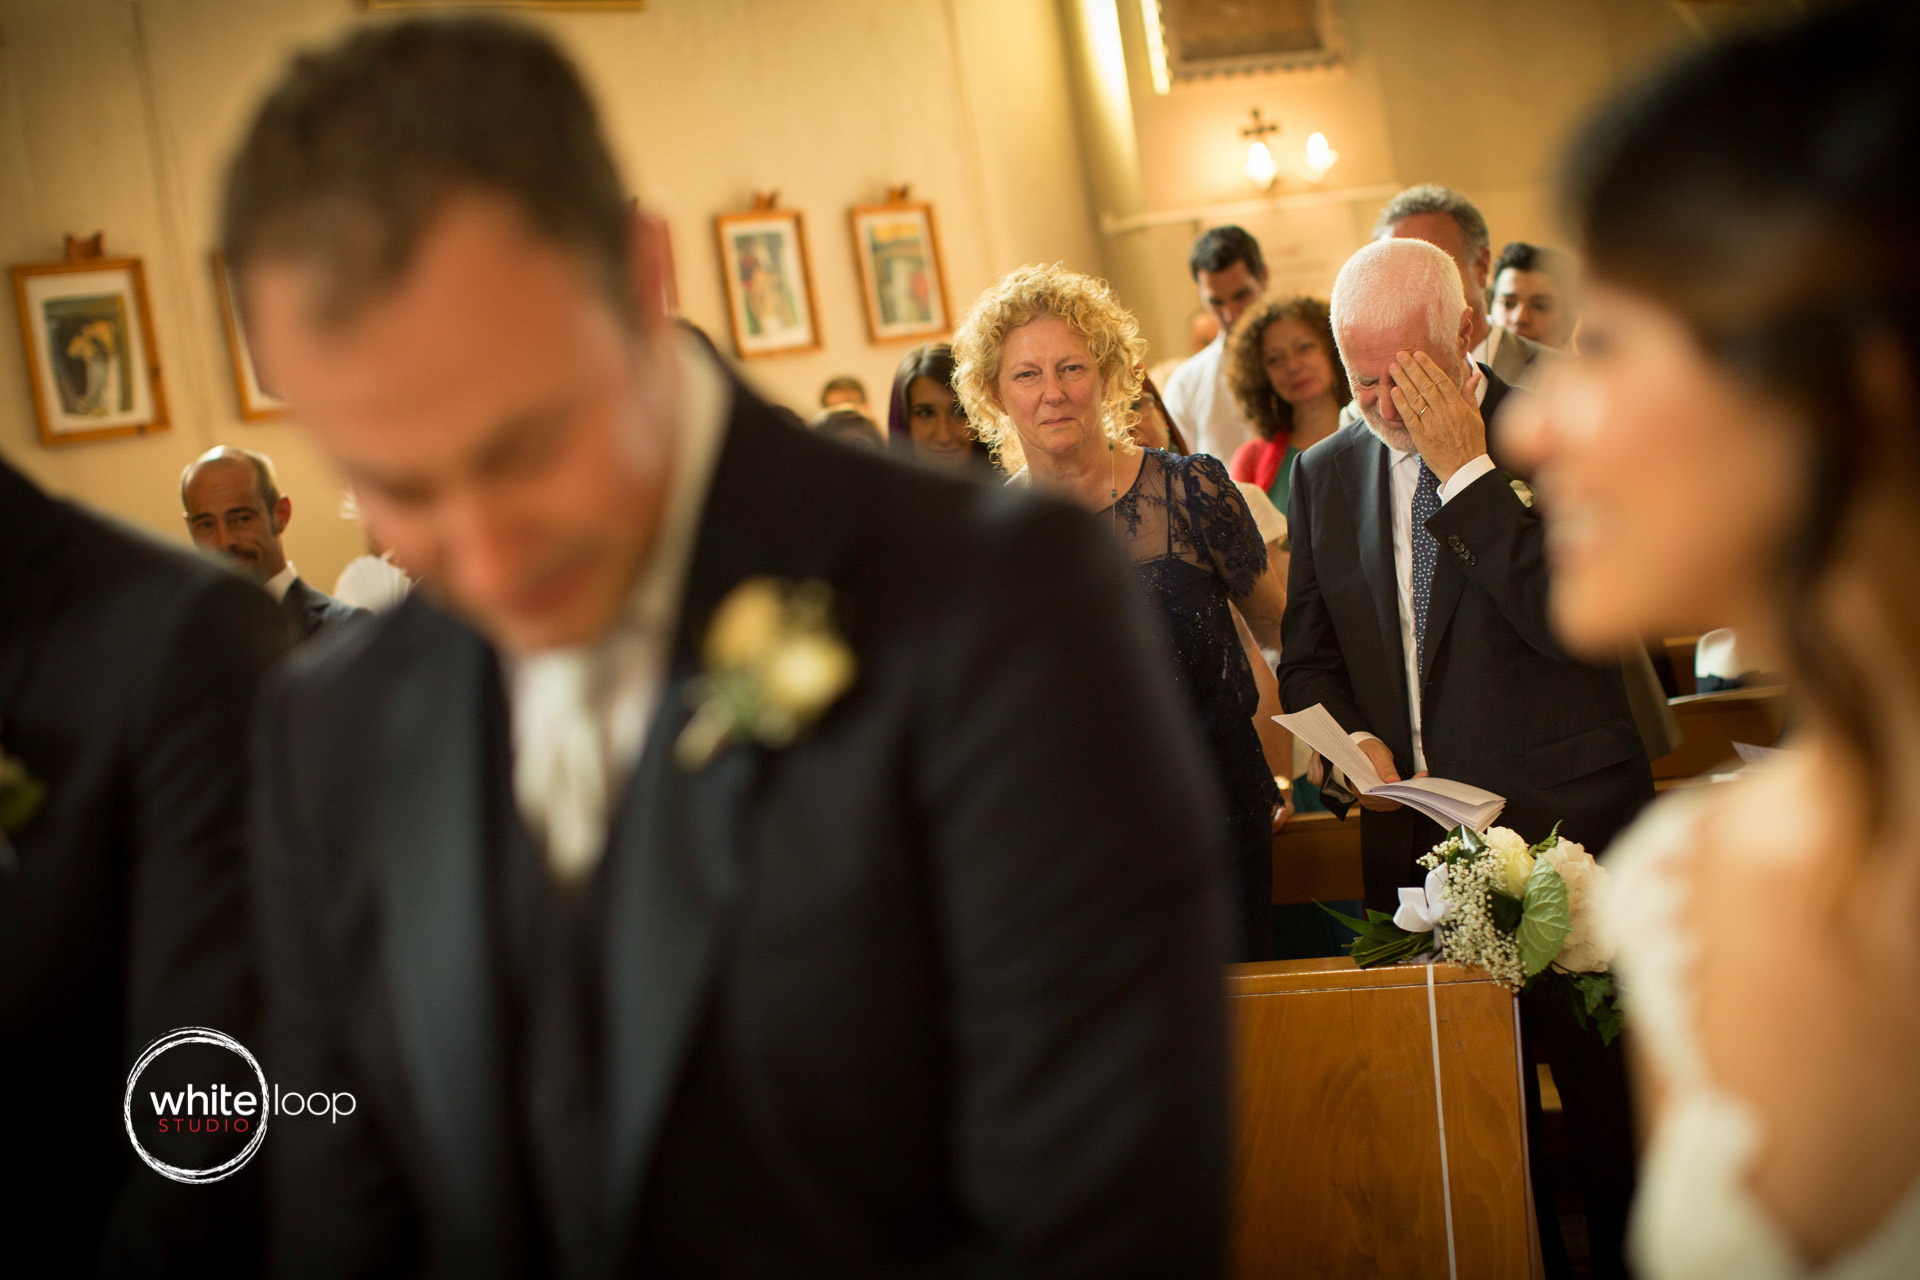 Laura and Giacomo, Wedding in Italy, Religiose Ceremony